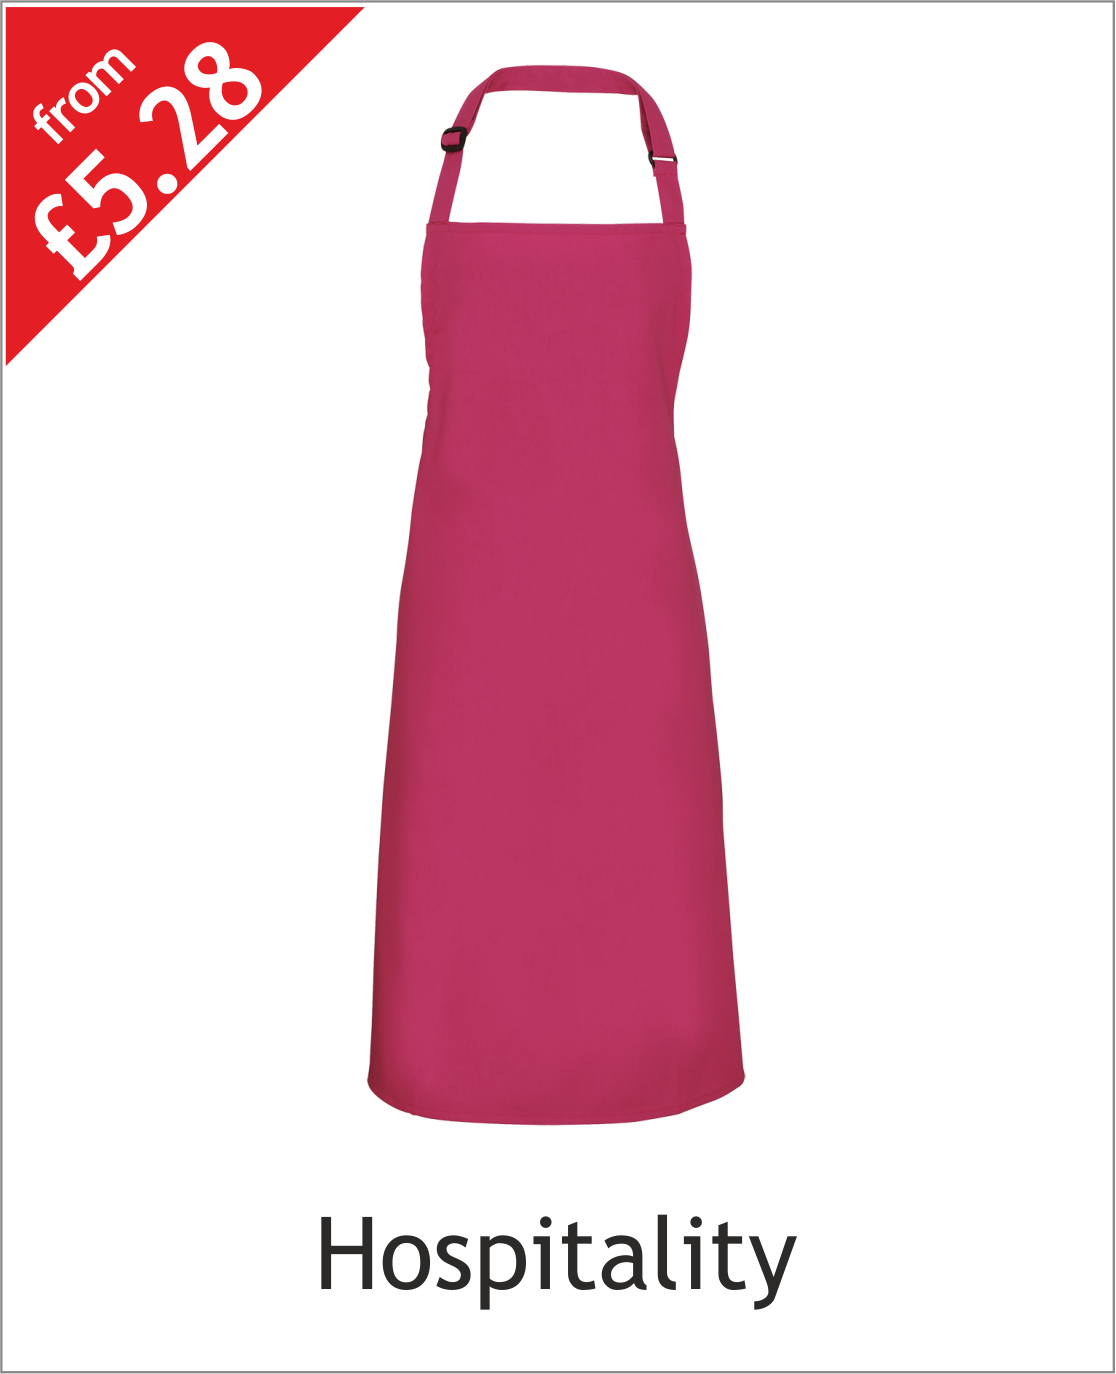 Embroidered & printed aprons catagory